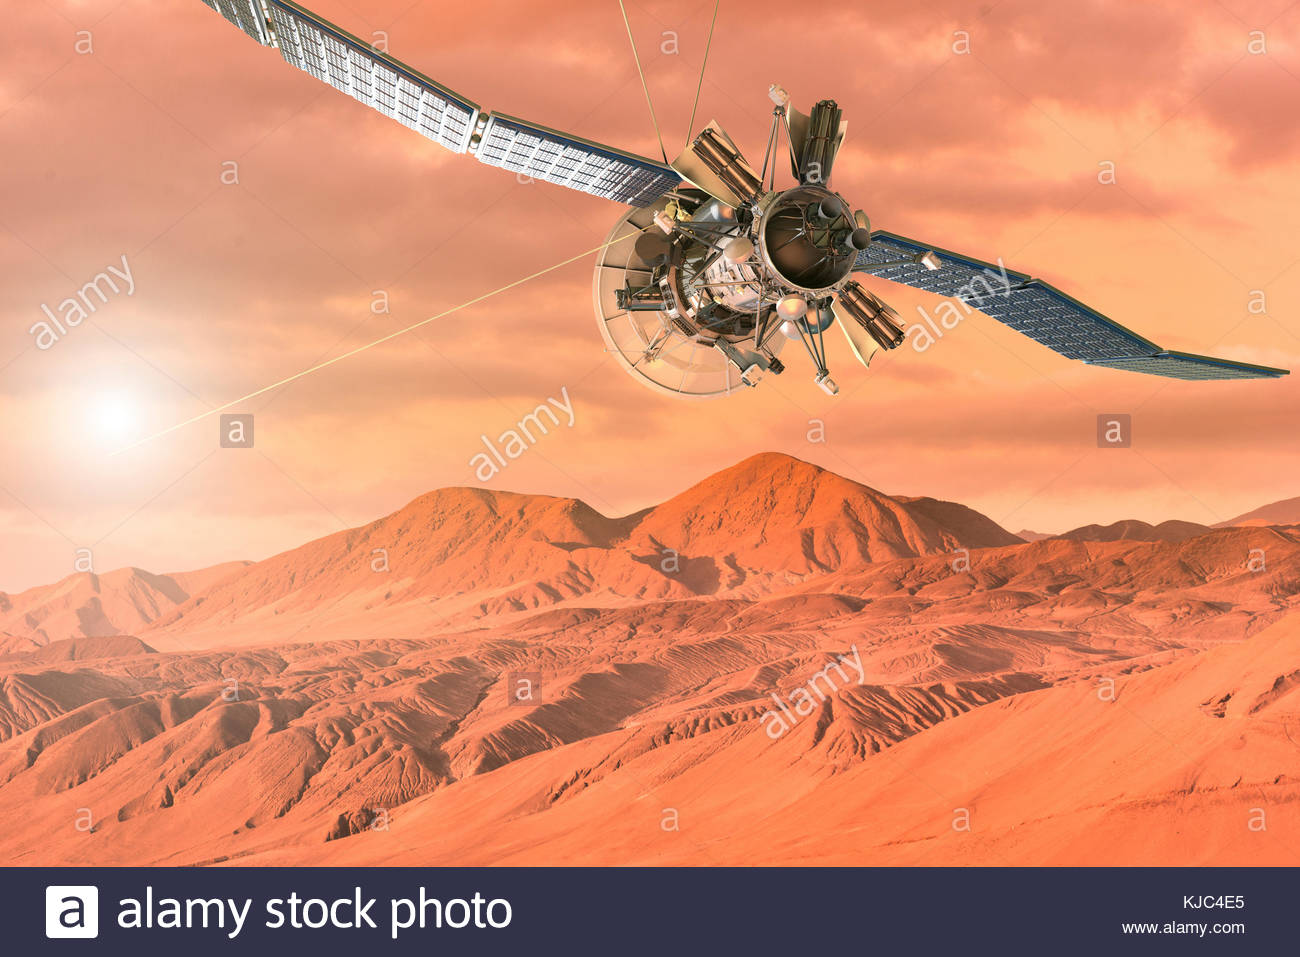 Digital illustration of a space ship exploring the surface of Mars - Stock Image